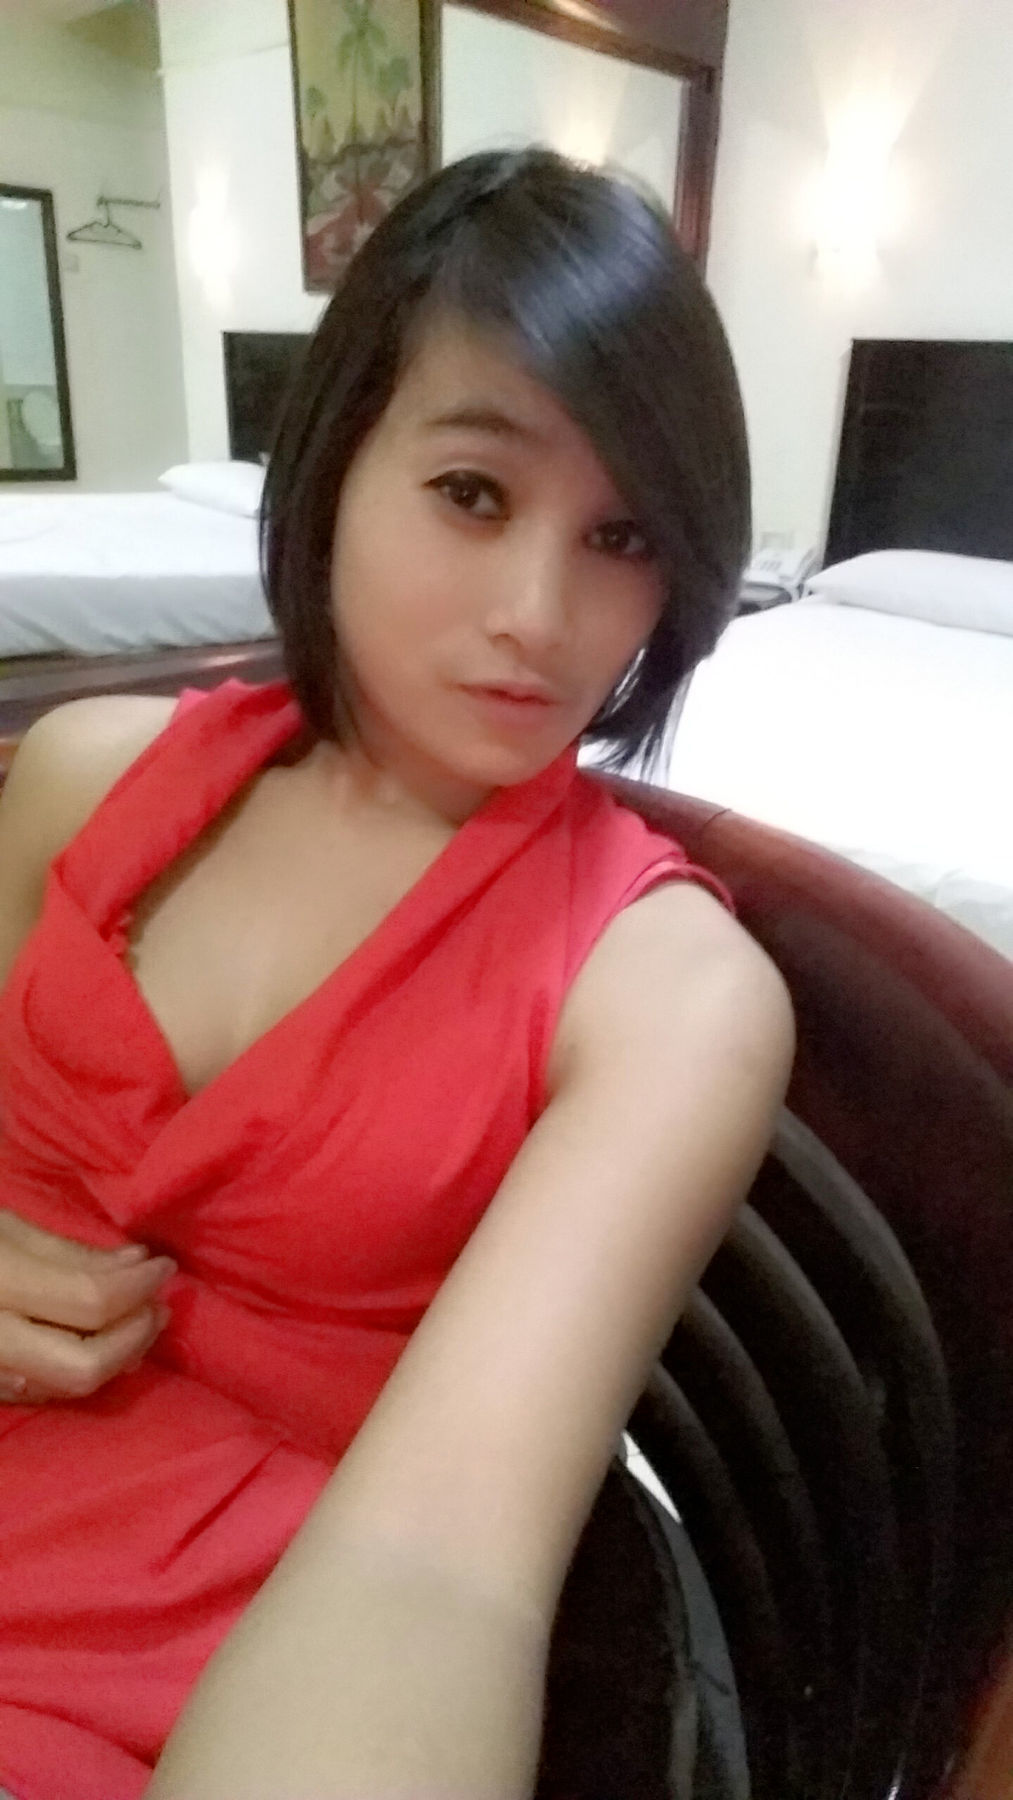 hitchhikers female escort in jakarta